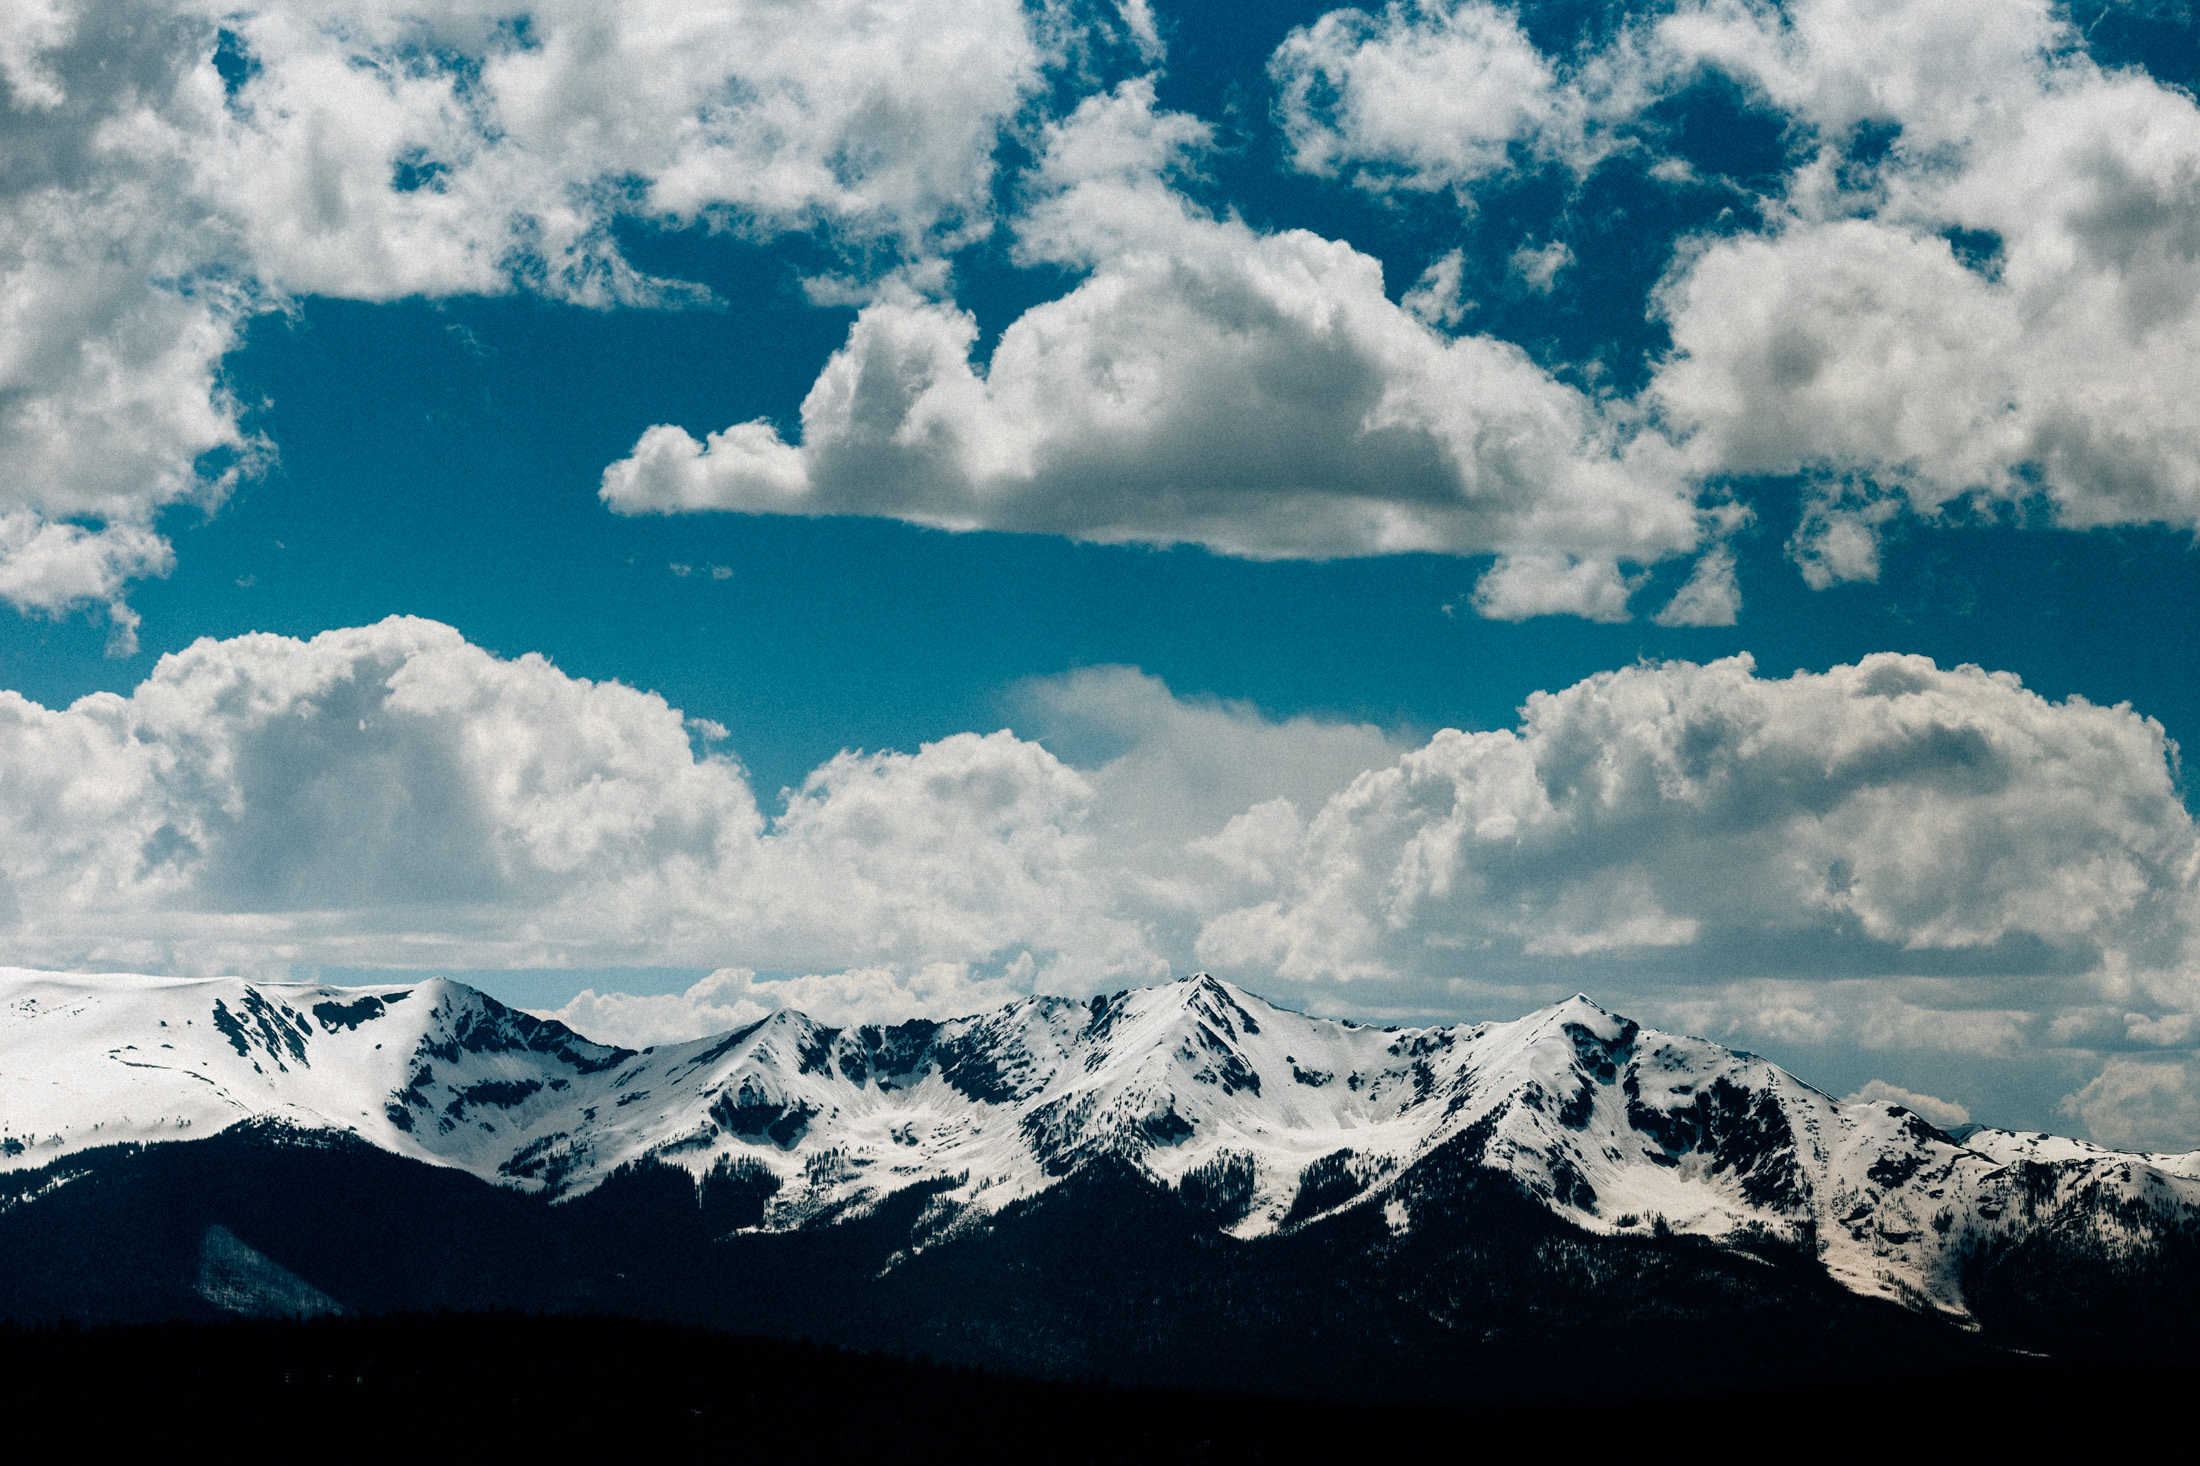 Snow-capped Rocky Mountains with blue sky and clouds at Keystone Resort.